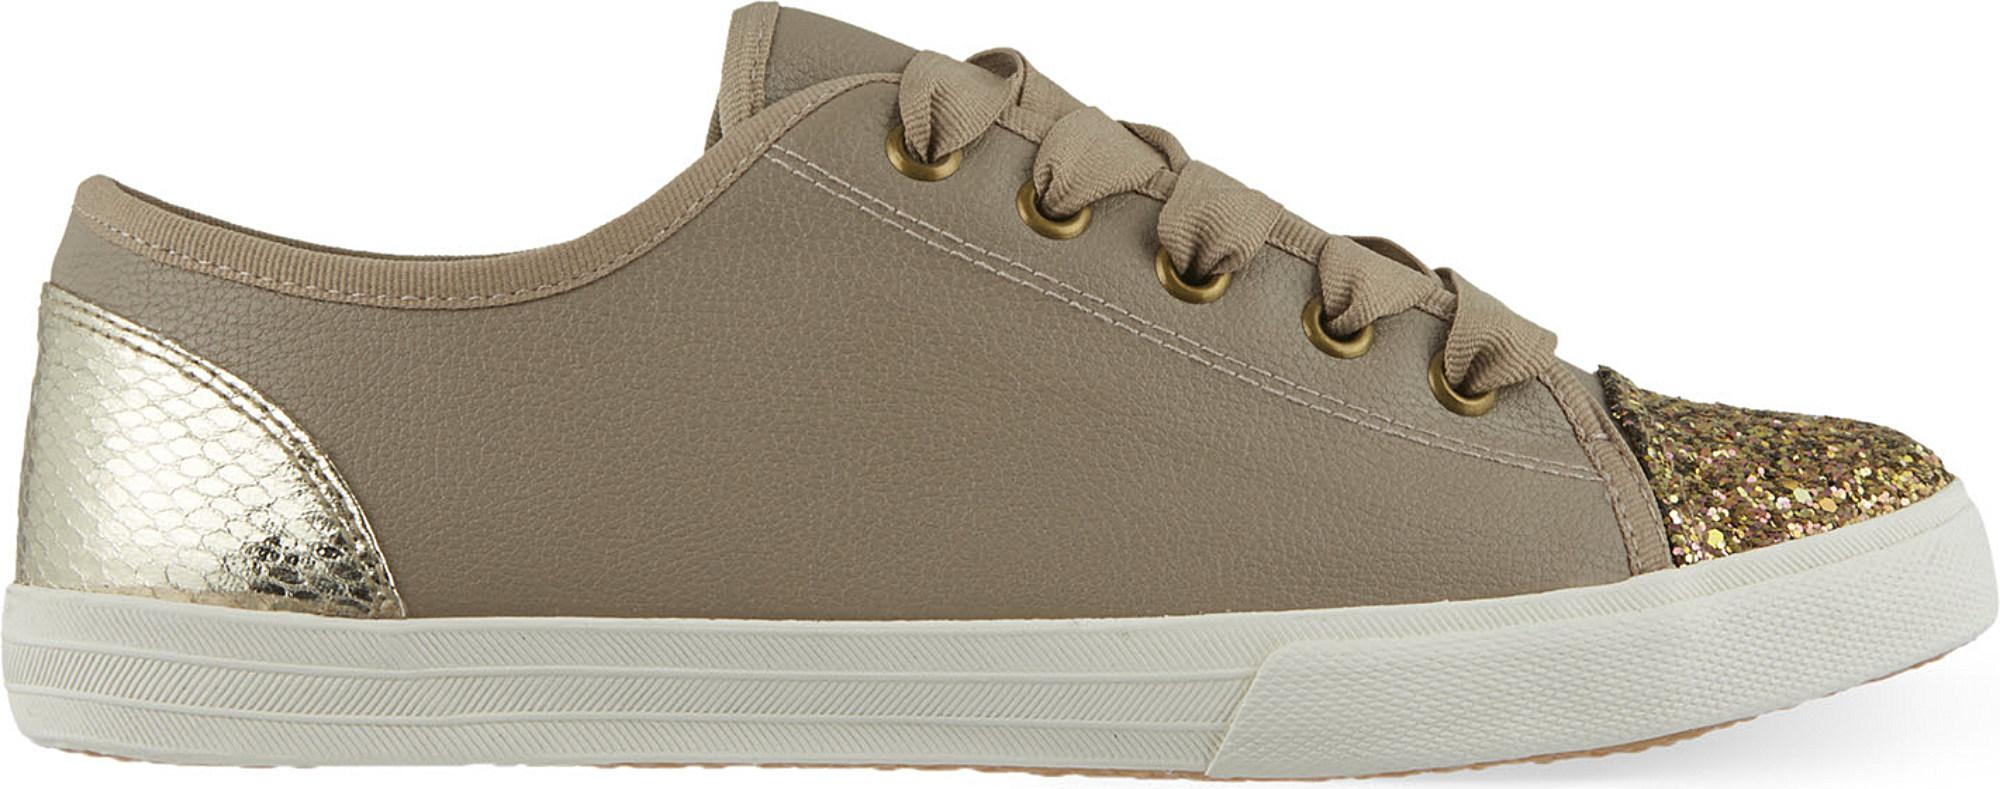 KG by Kurt Geiger Synthetic Lucca Glitter Trainers in Nude